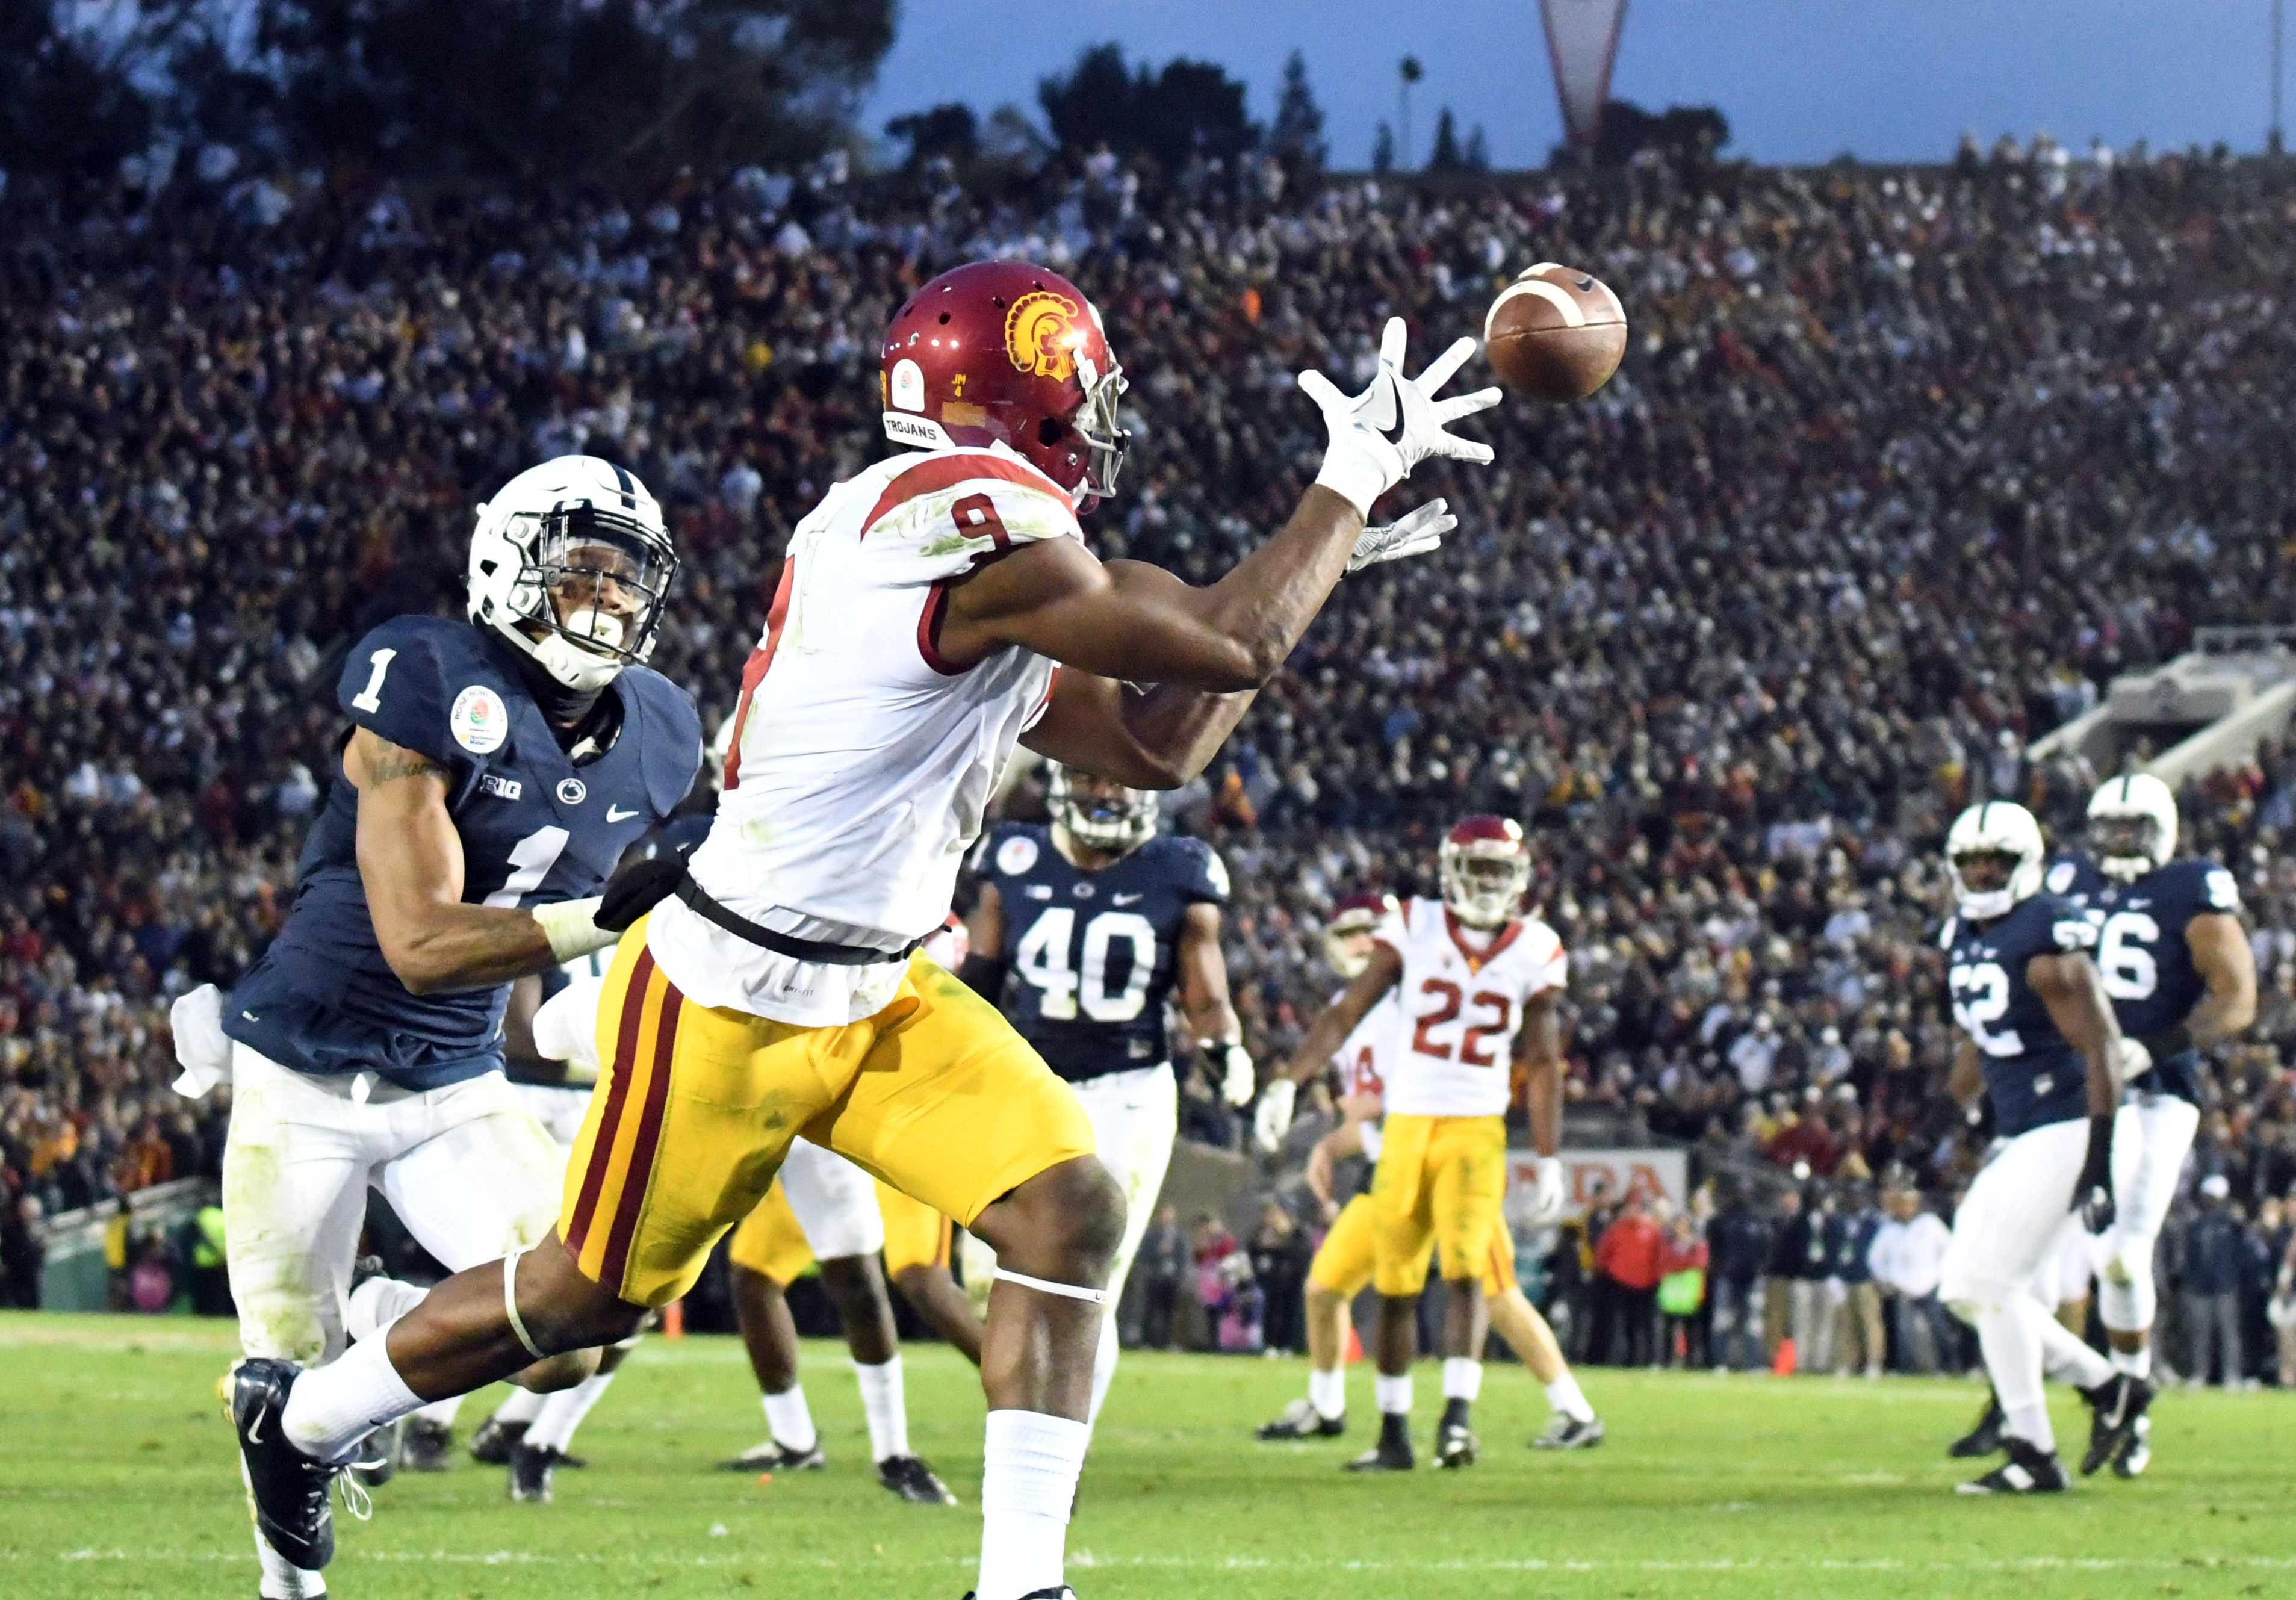 NCAA Football: Rose Bowl Game-Penn State vs Southern California